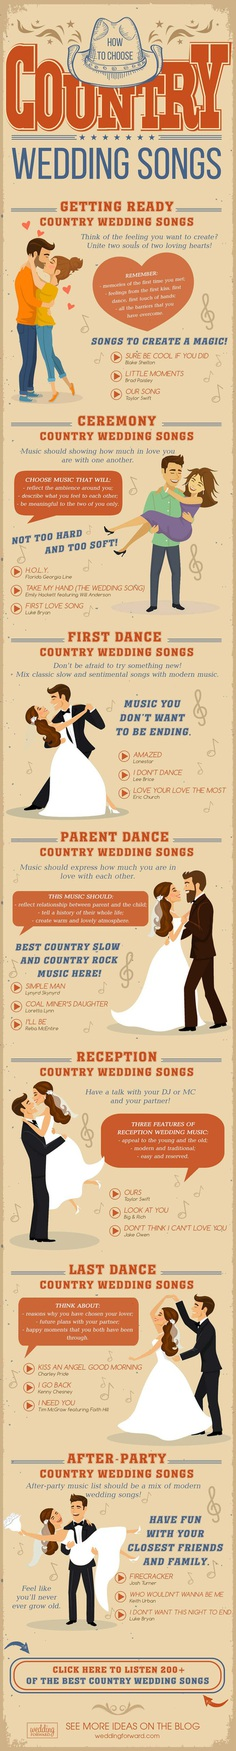 country wedding songs infographic